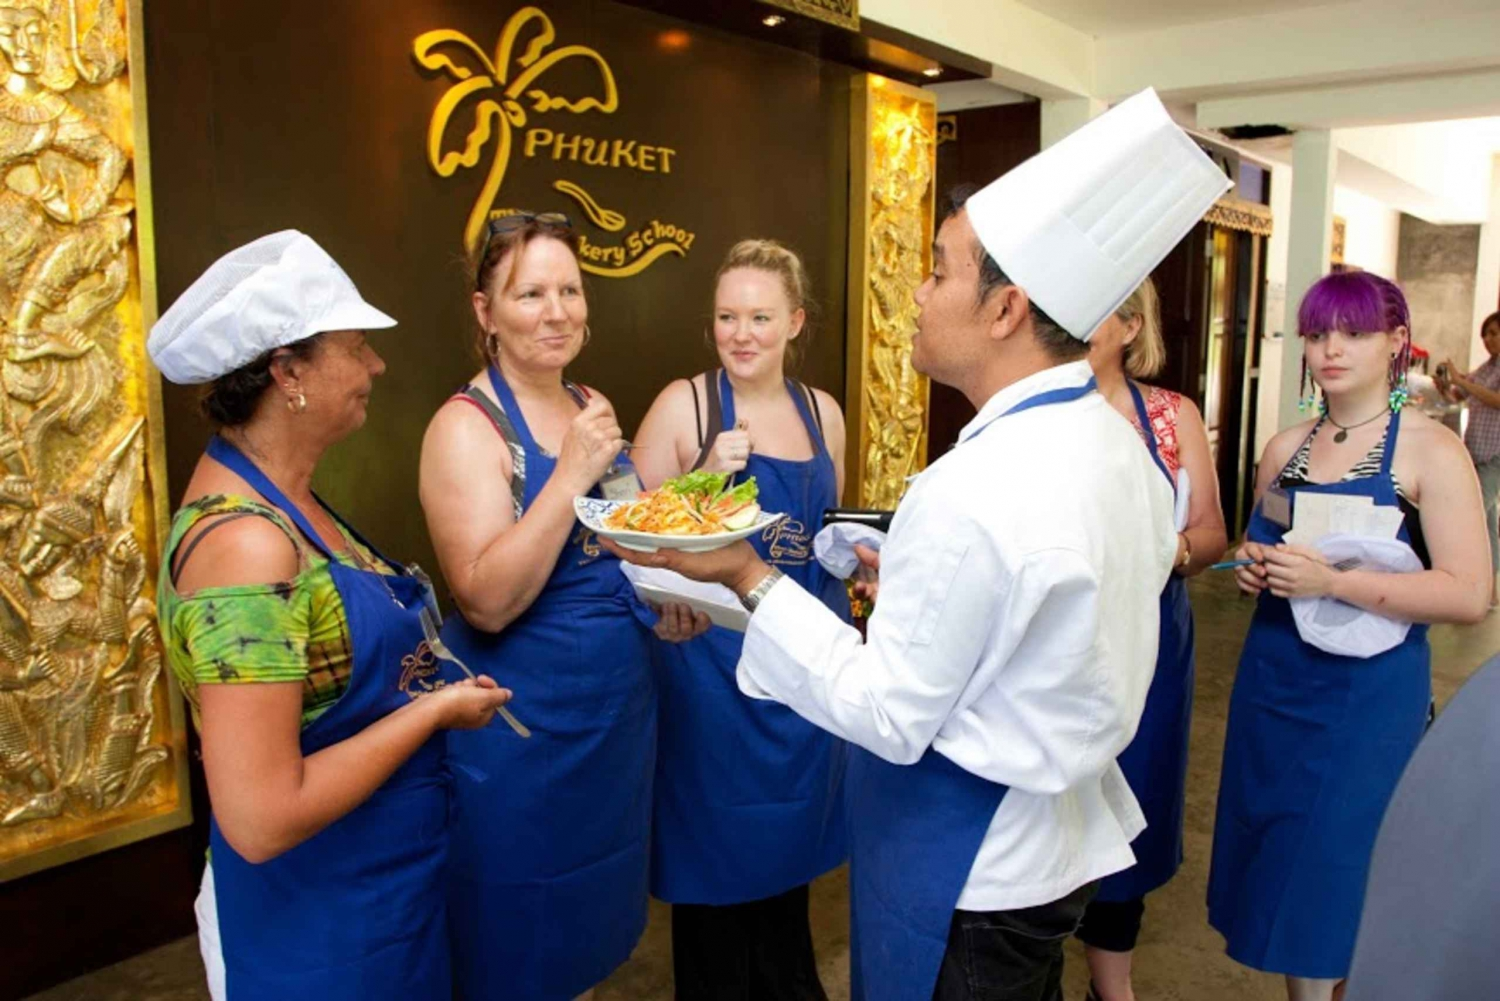 The Phuket Thai Cookery School: Daily Cooking Classes